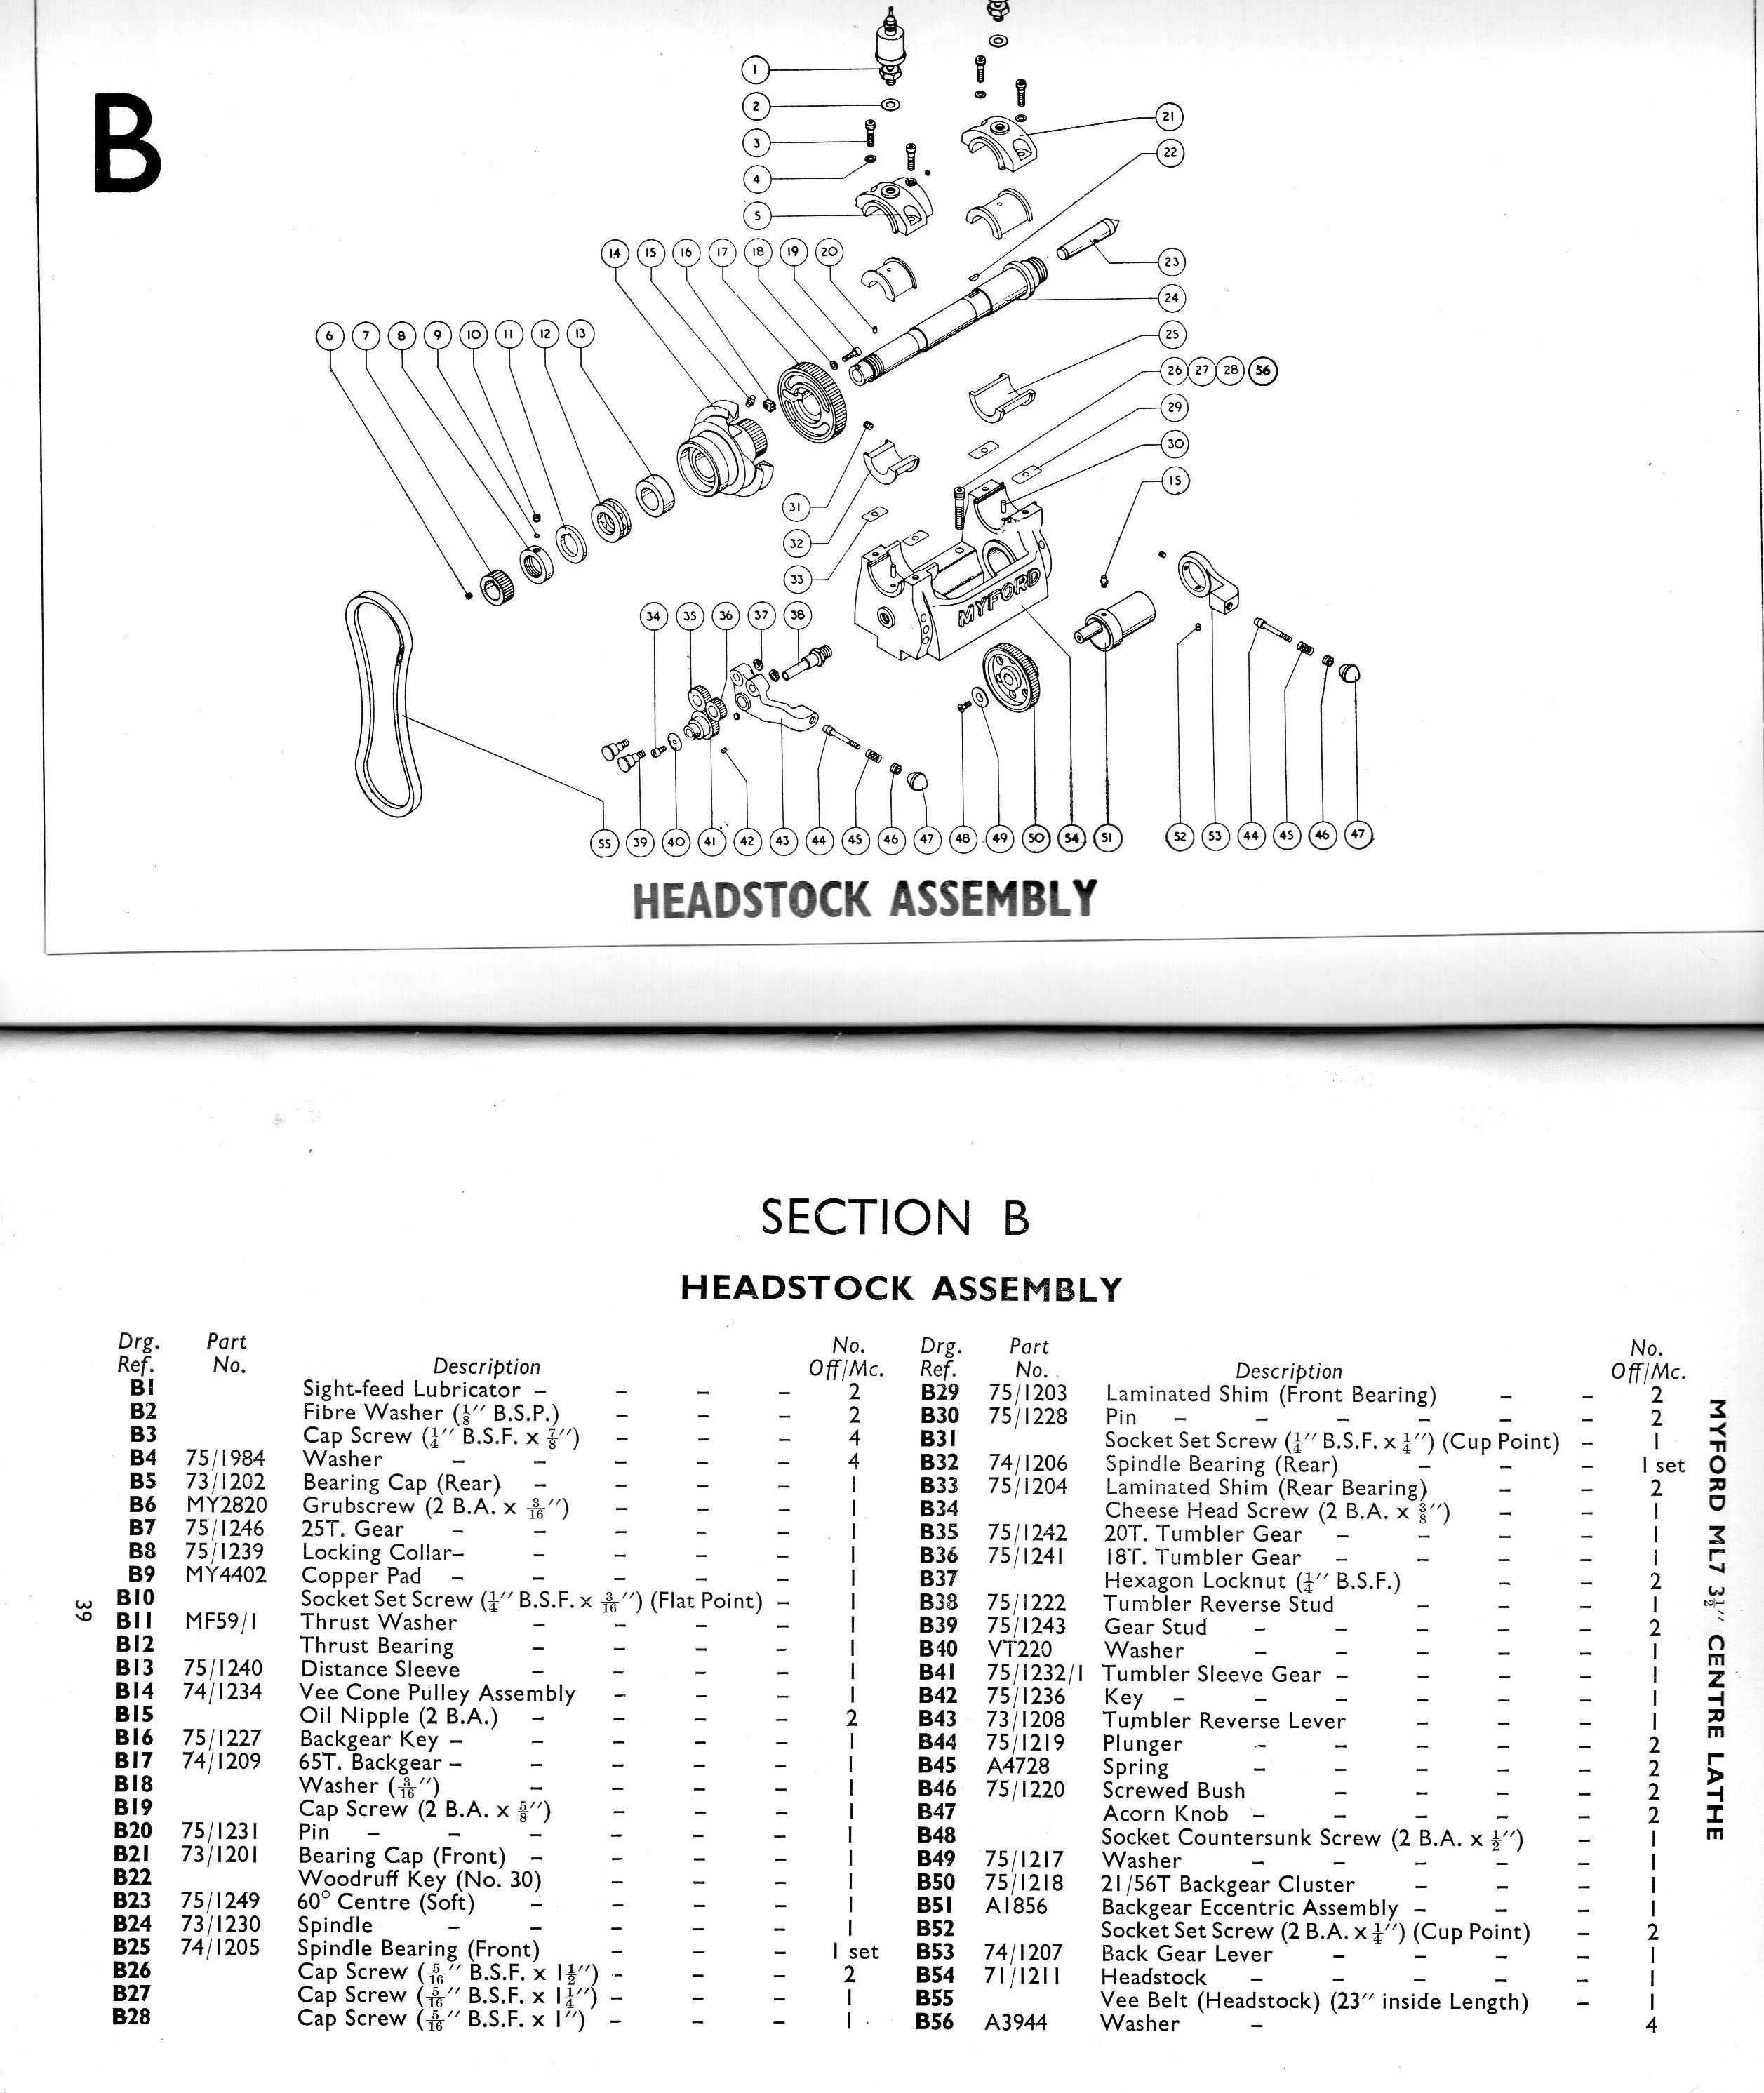 small resolution of exploded parts diagram engineering tools lathe odd stuff freaky things tower